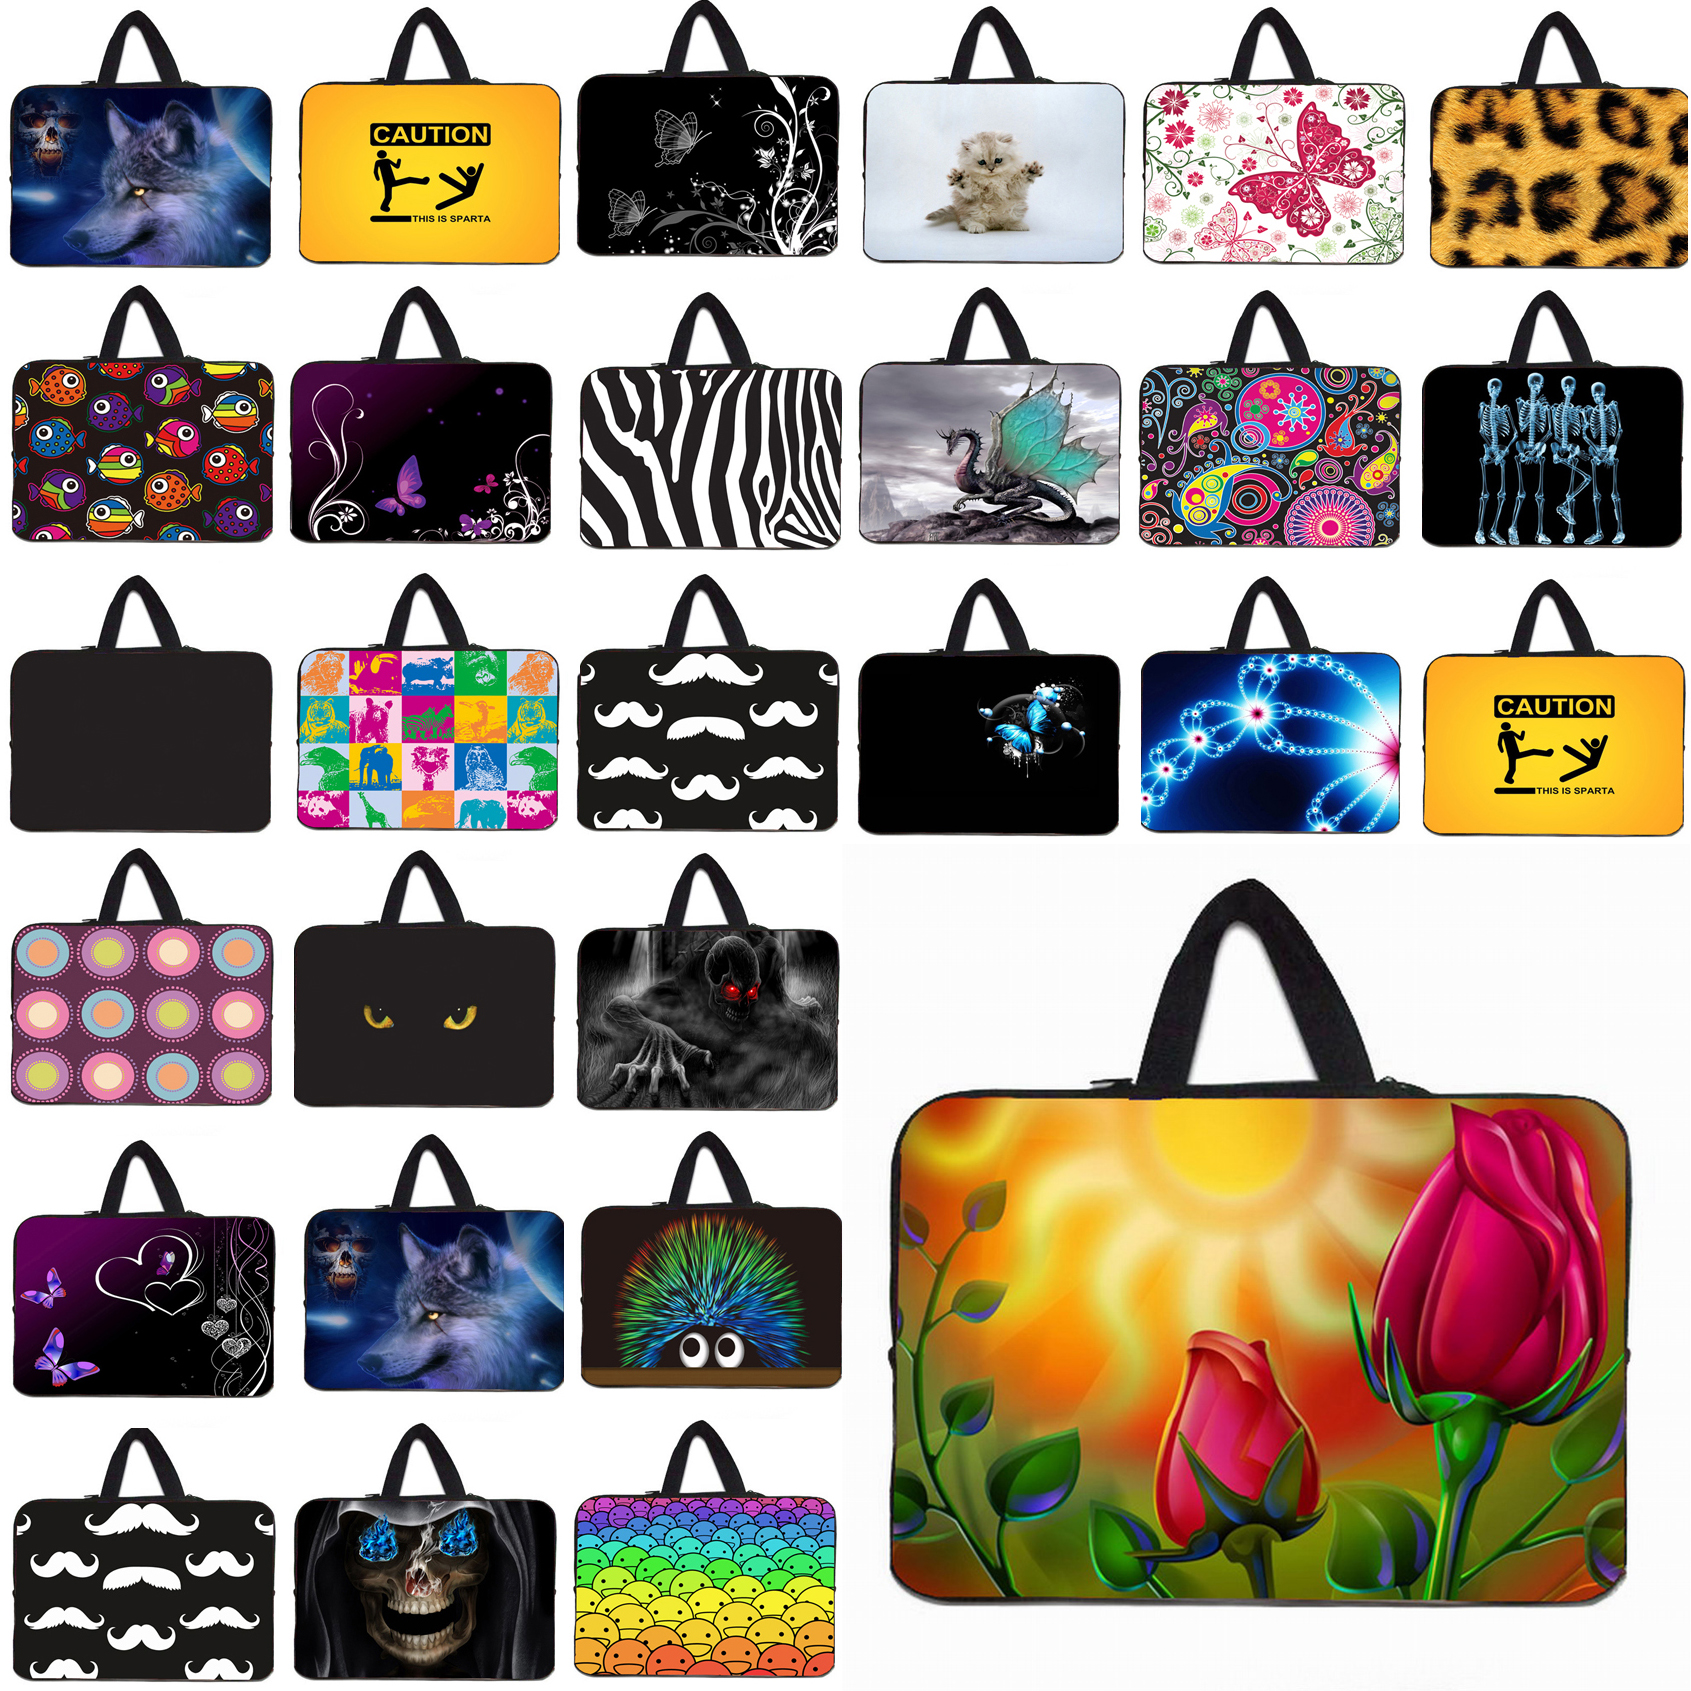 10 Portable Tablet 10.1 9.7 Inch Mini PC Protector Briefcase Fashion Laptop Cases Pouch Bag Notebook Computer Bag For Women